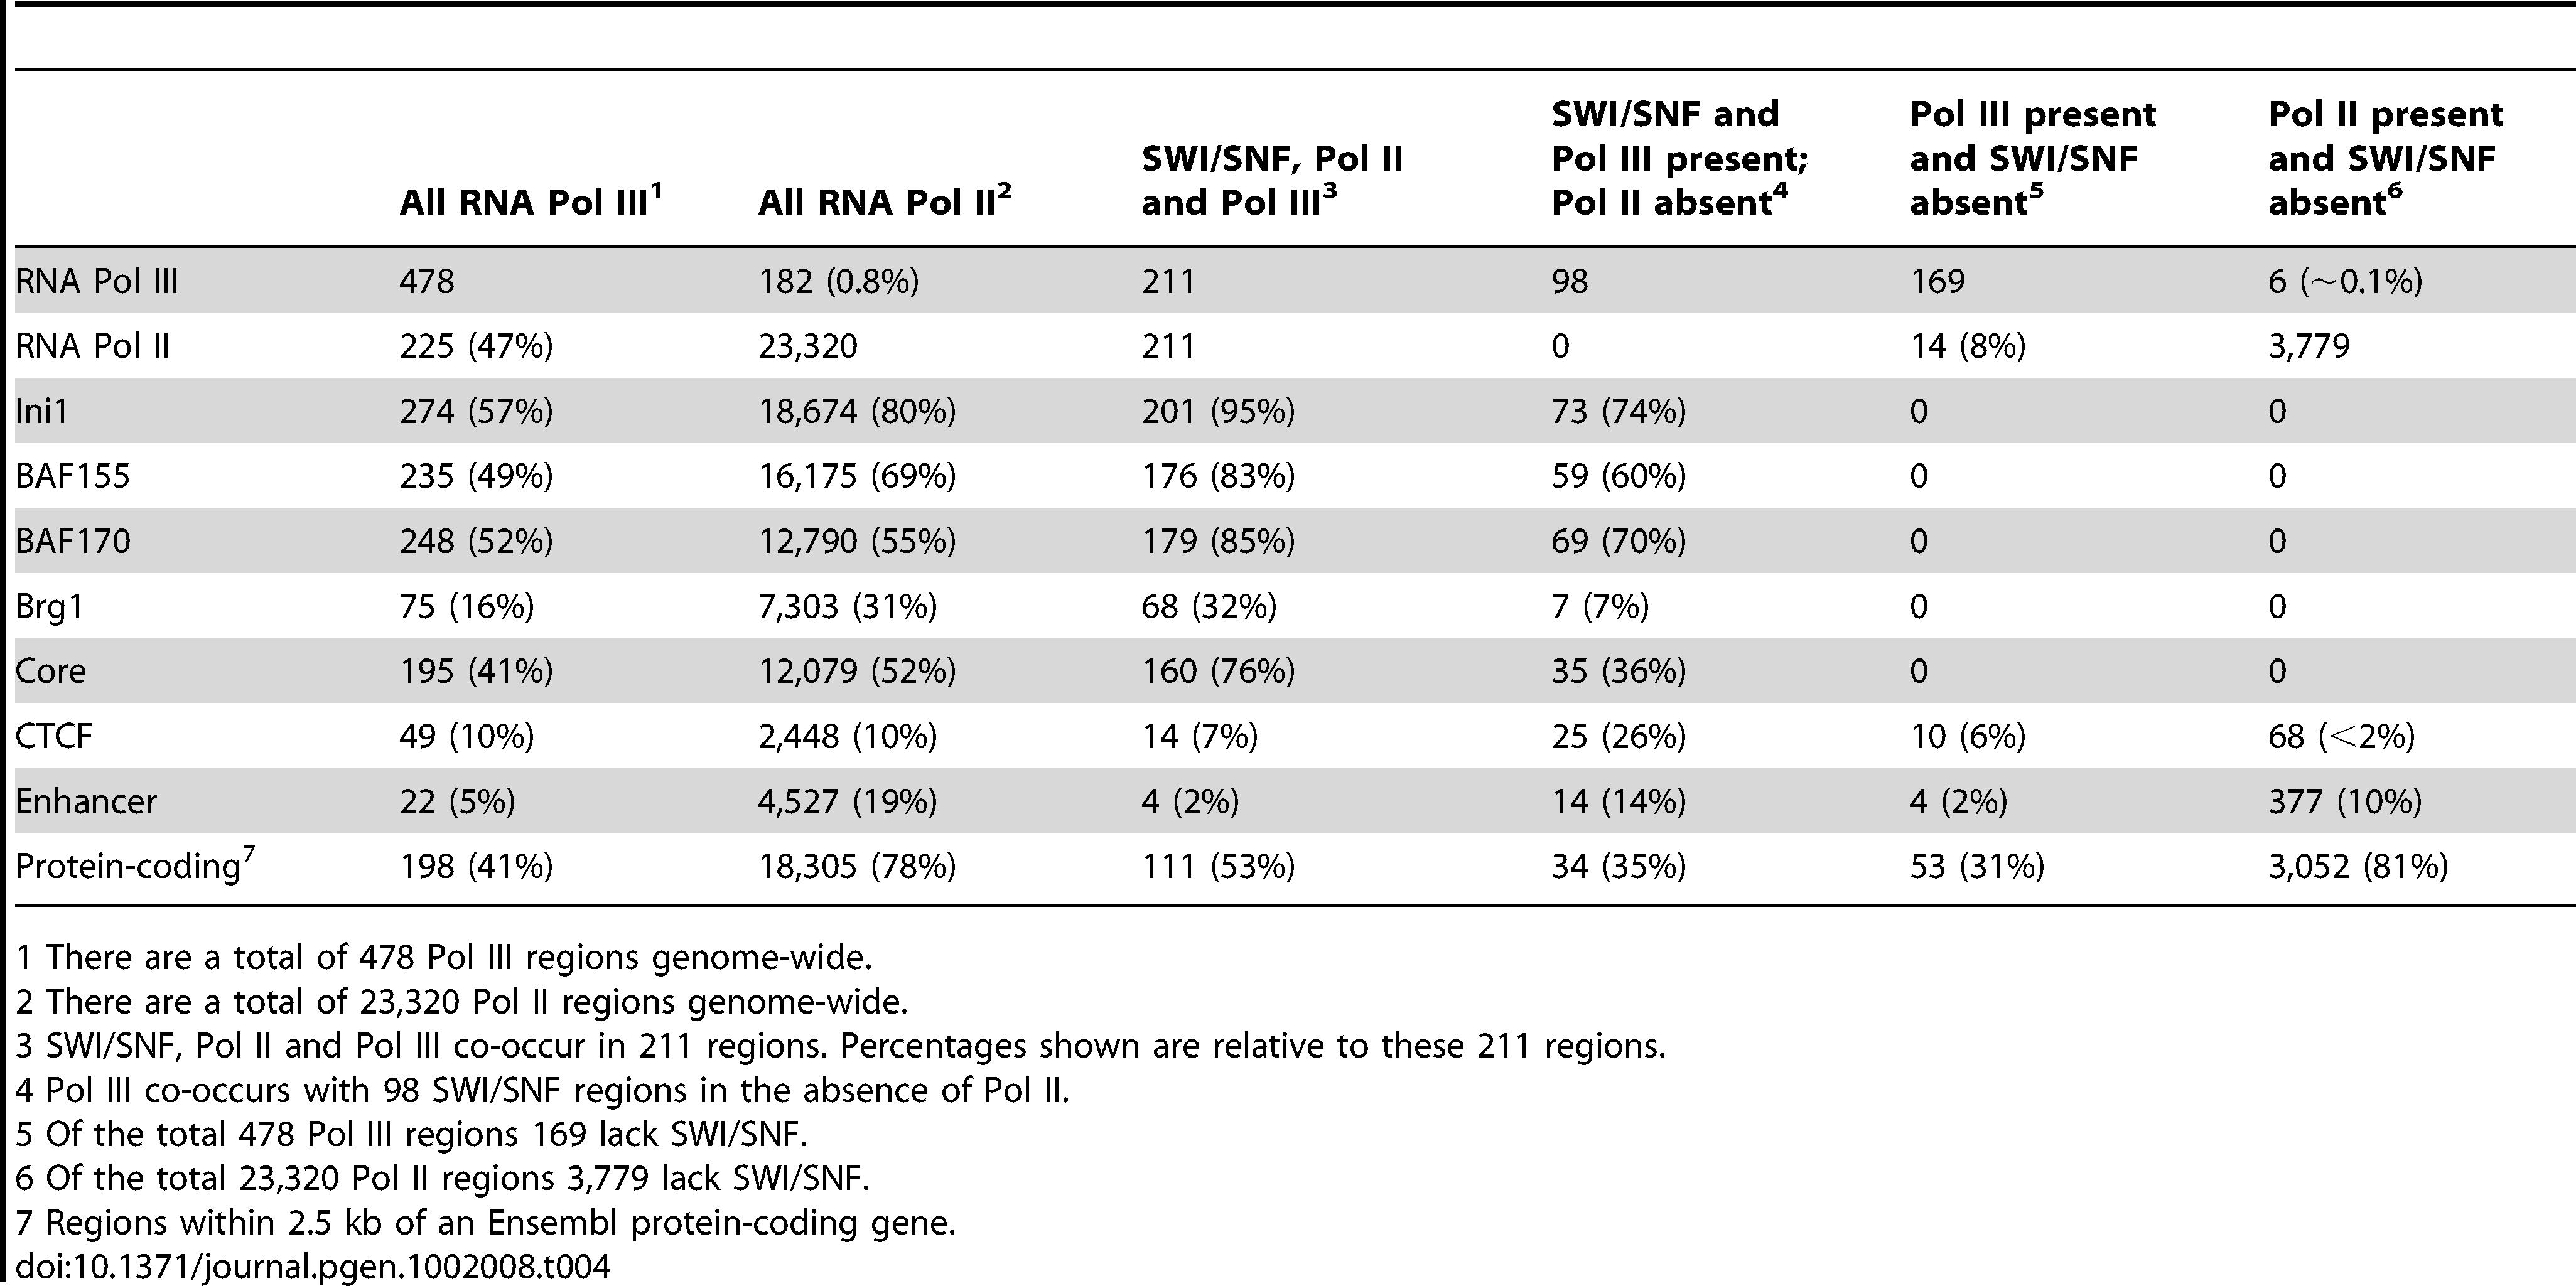 Co-occurrence of RNA Pol II and Pol III with SWI/SNF high-confidence union regions.